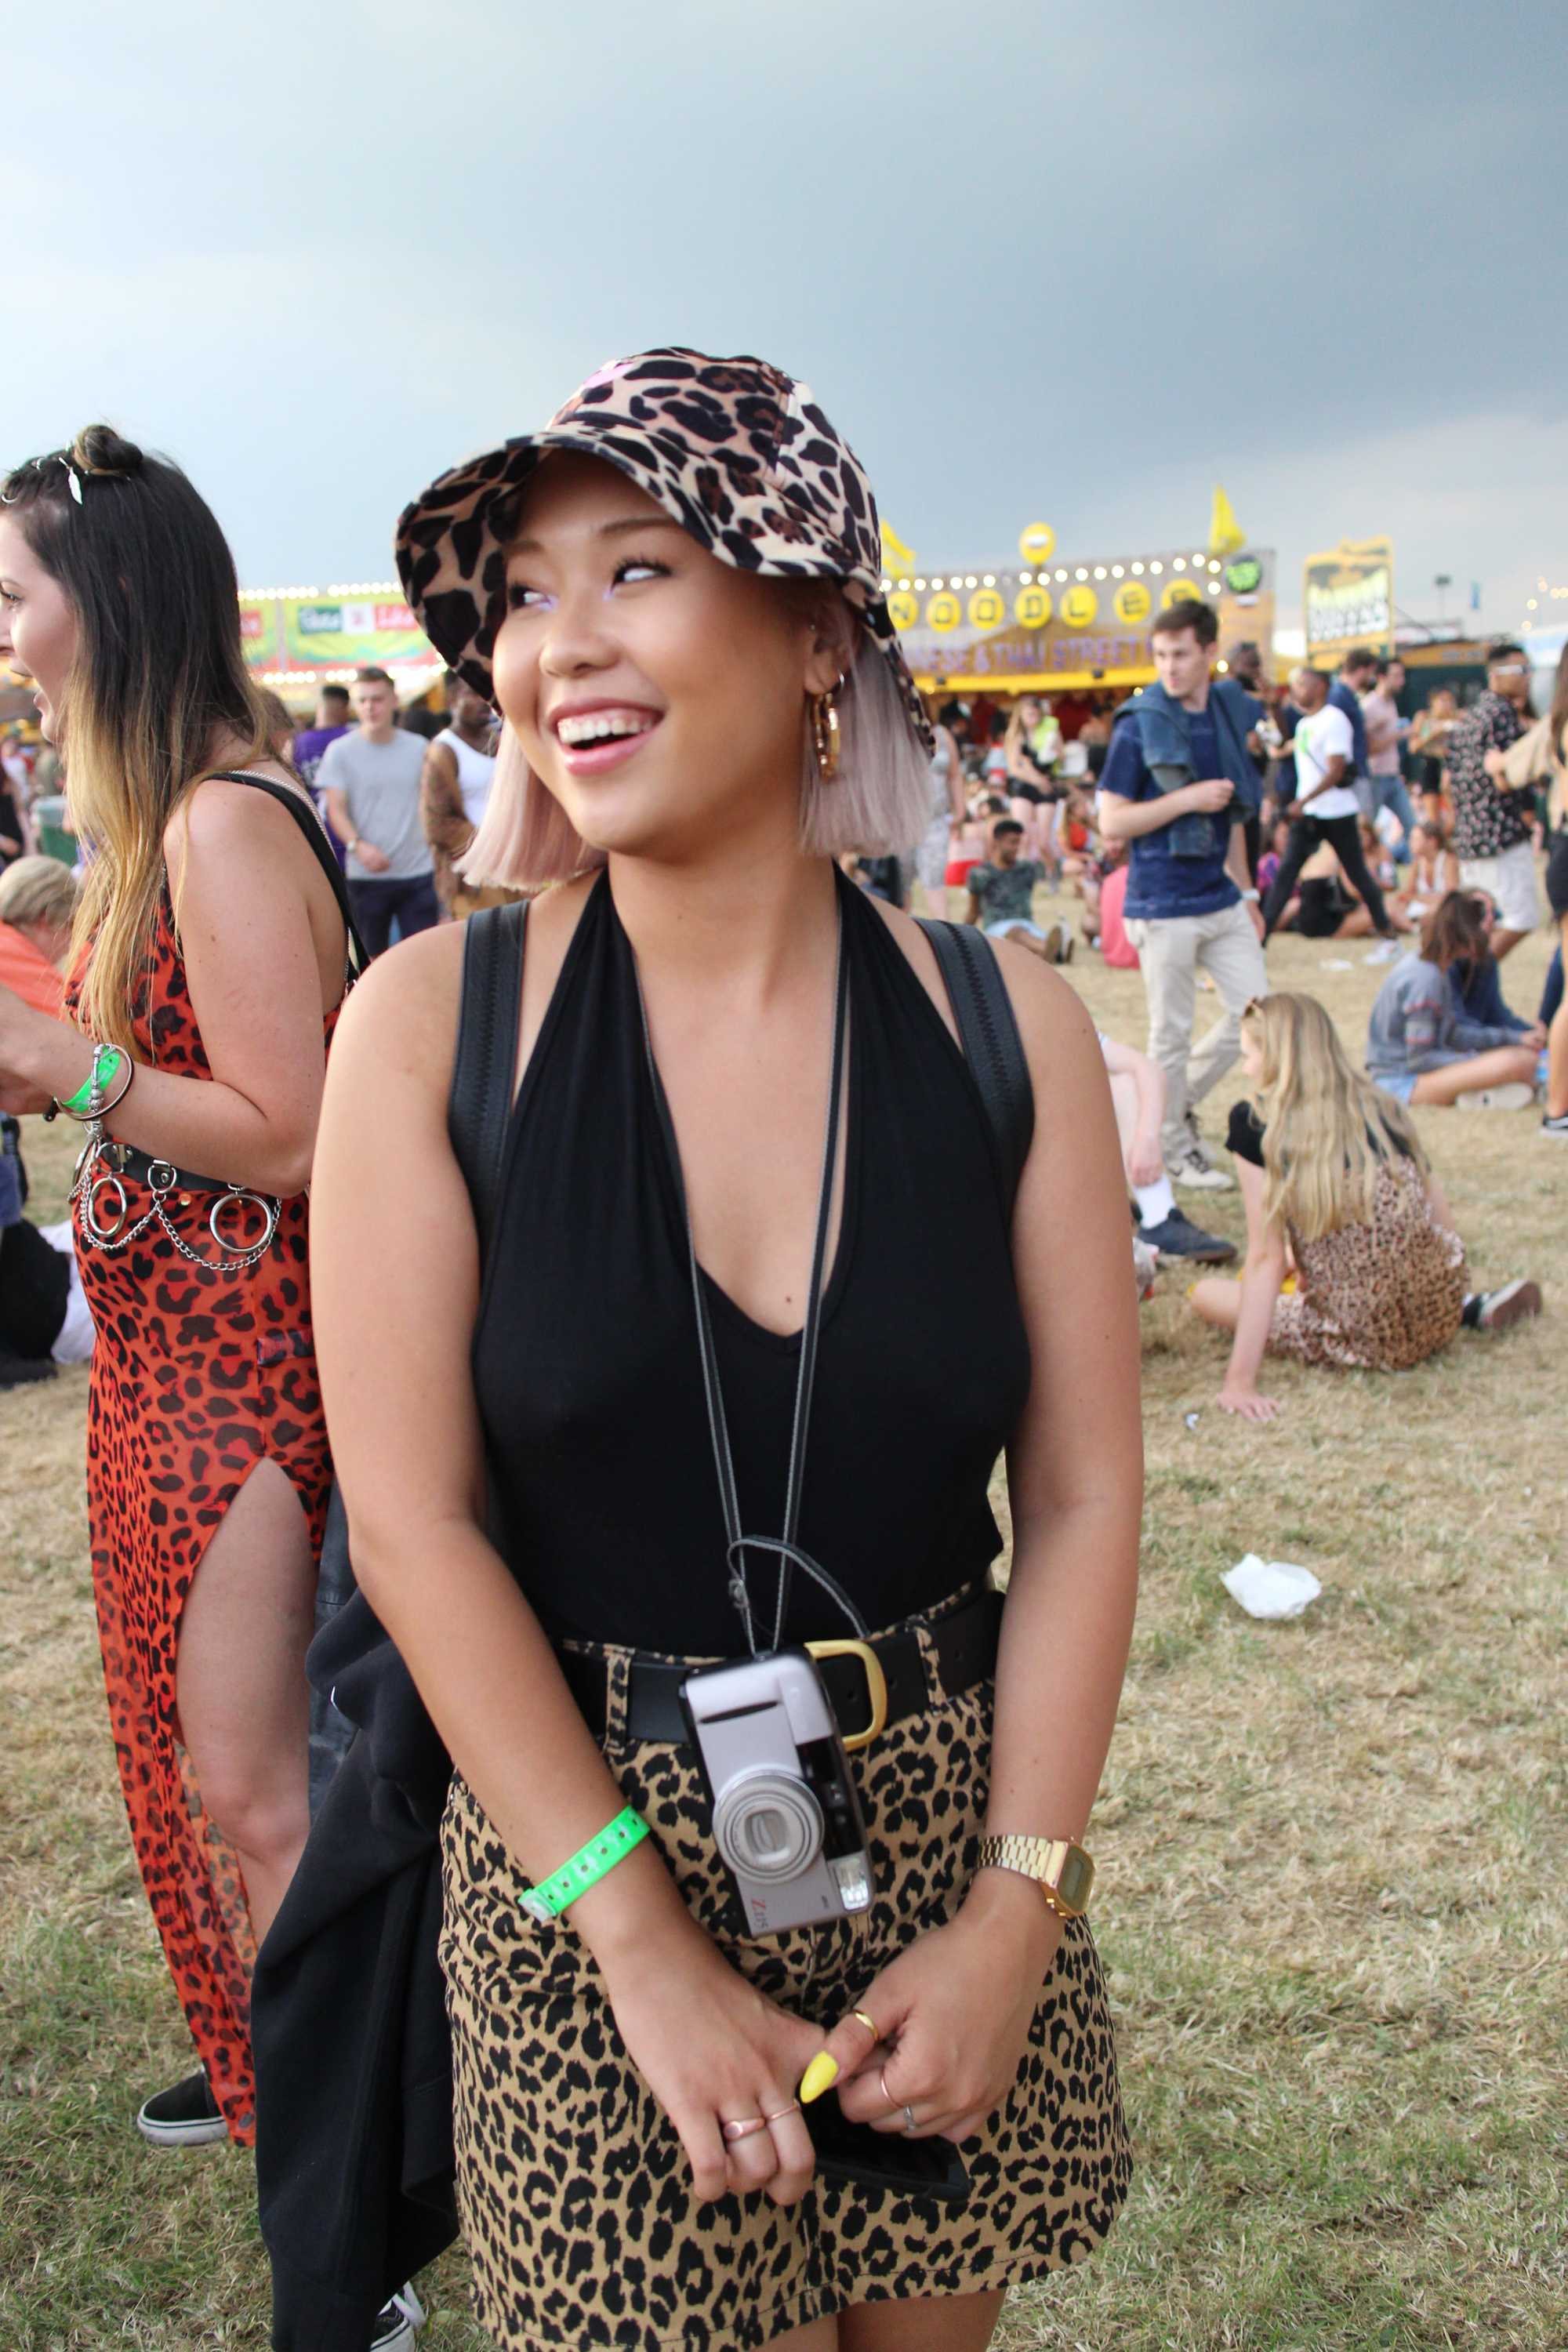 Festival hair accessories: Woman at Lovebox 2018 with a sharp bob length hair worn with a bucket hat